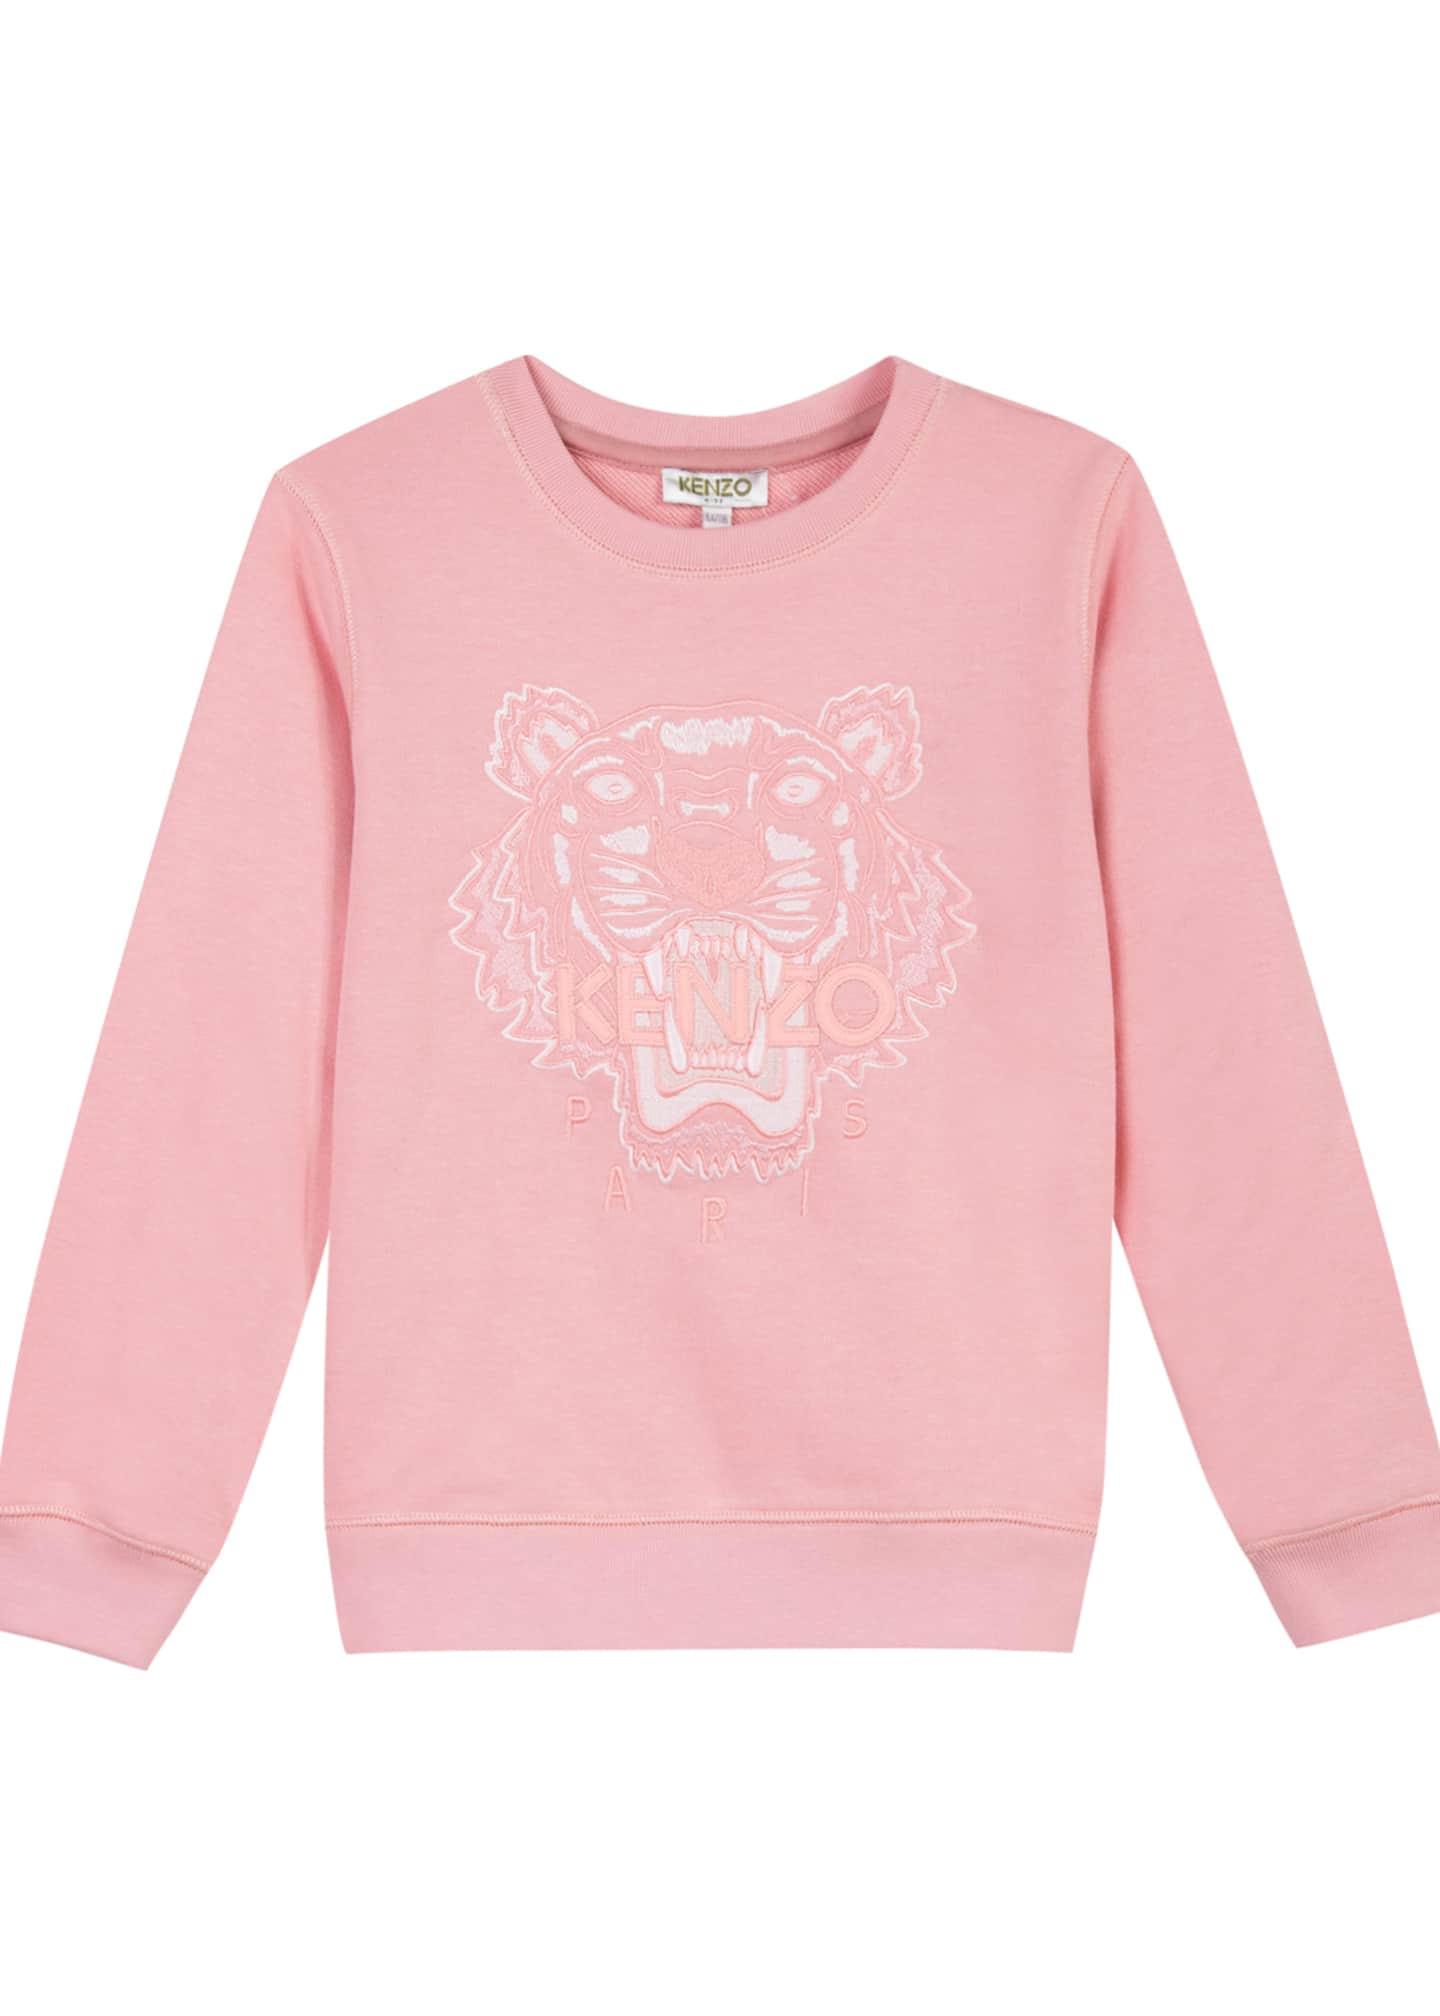 Image 1 of 3: Tiger Face Icon Sweatshirt, Sizes 8-12